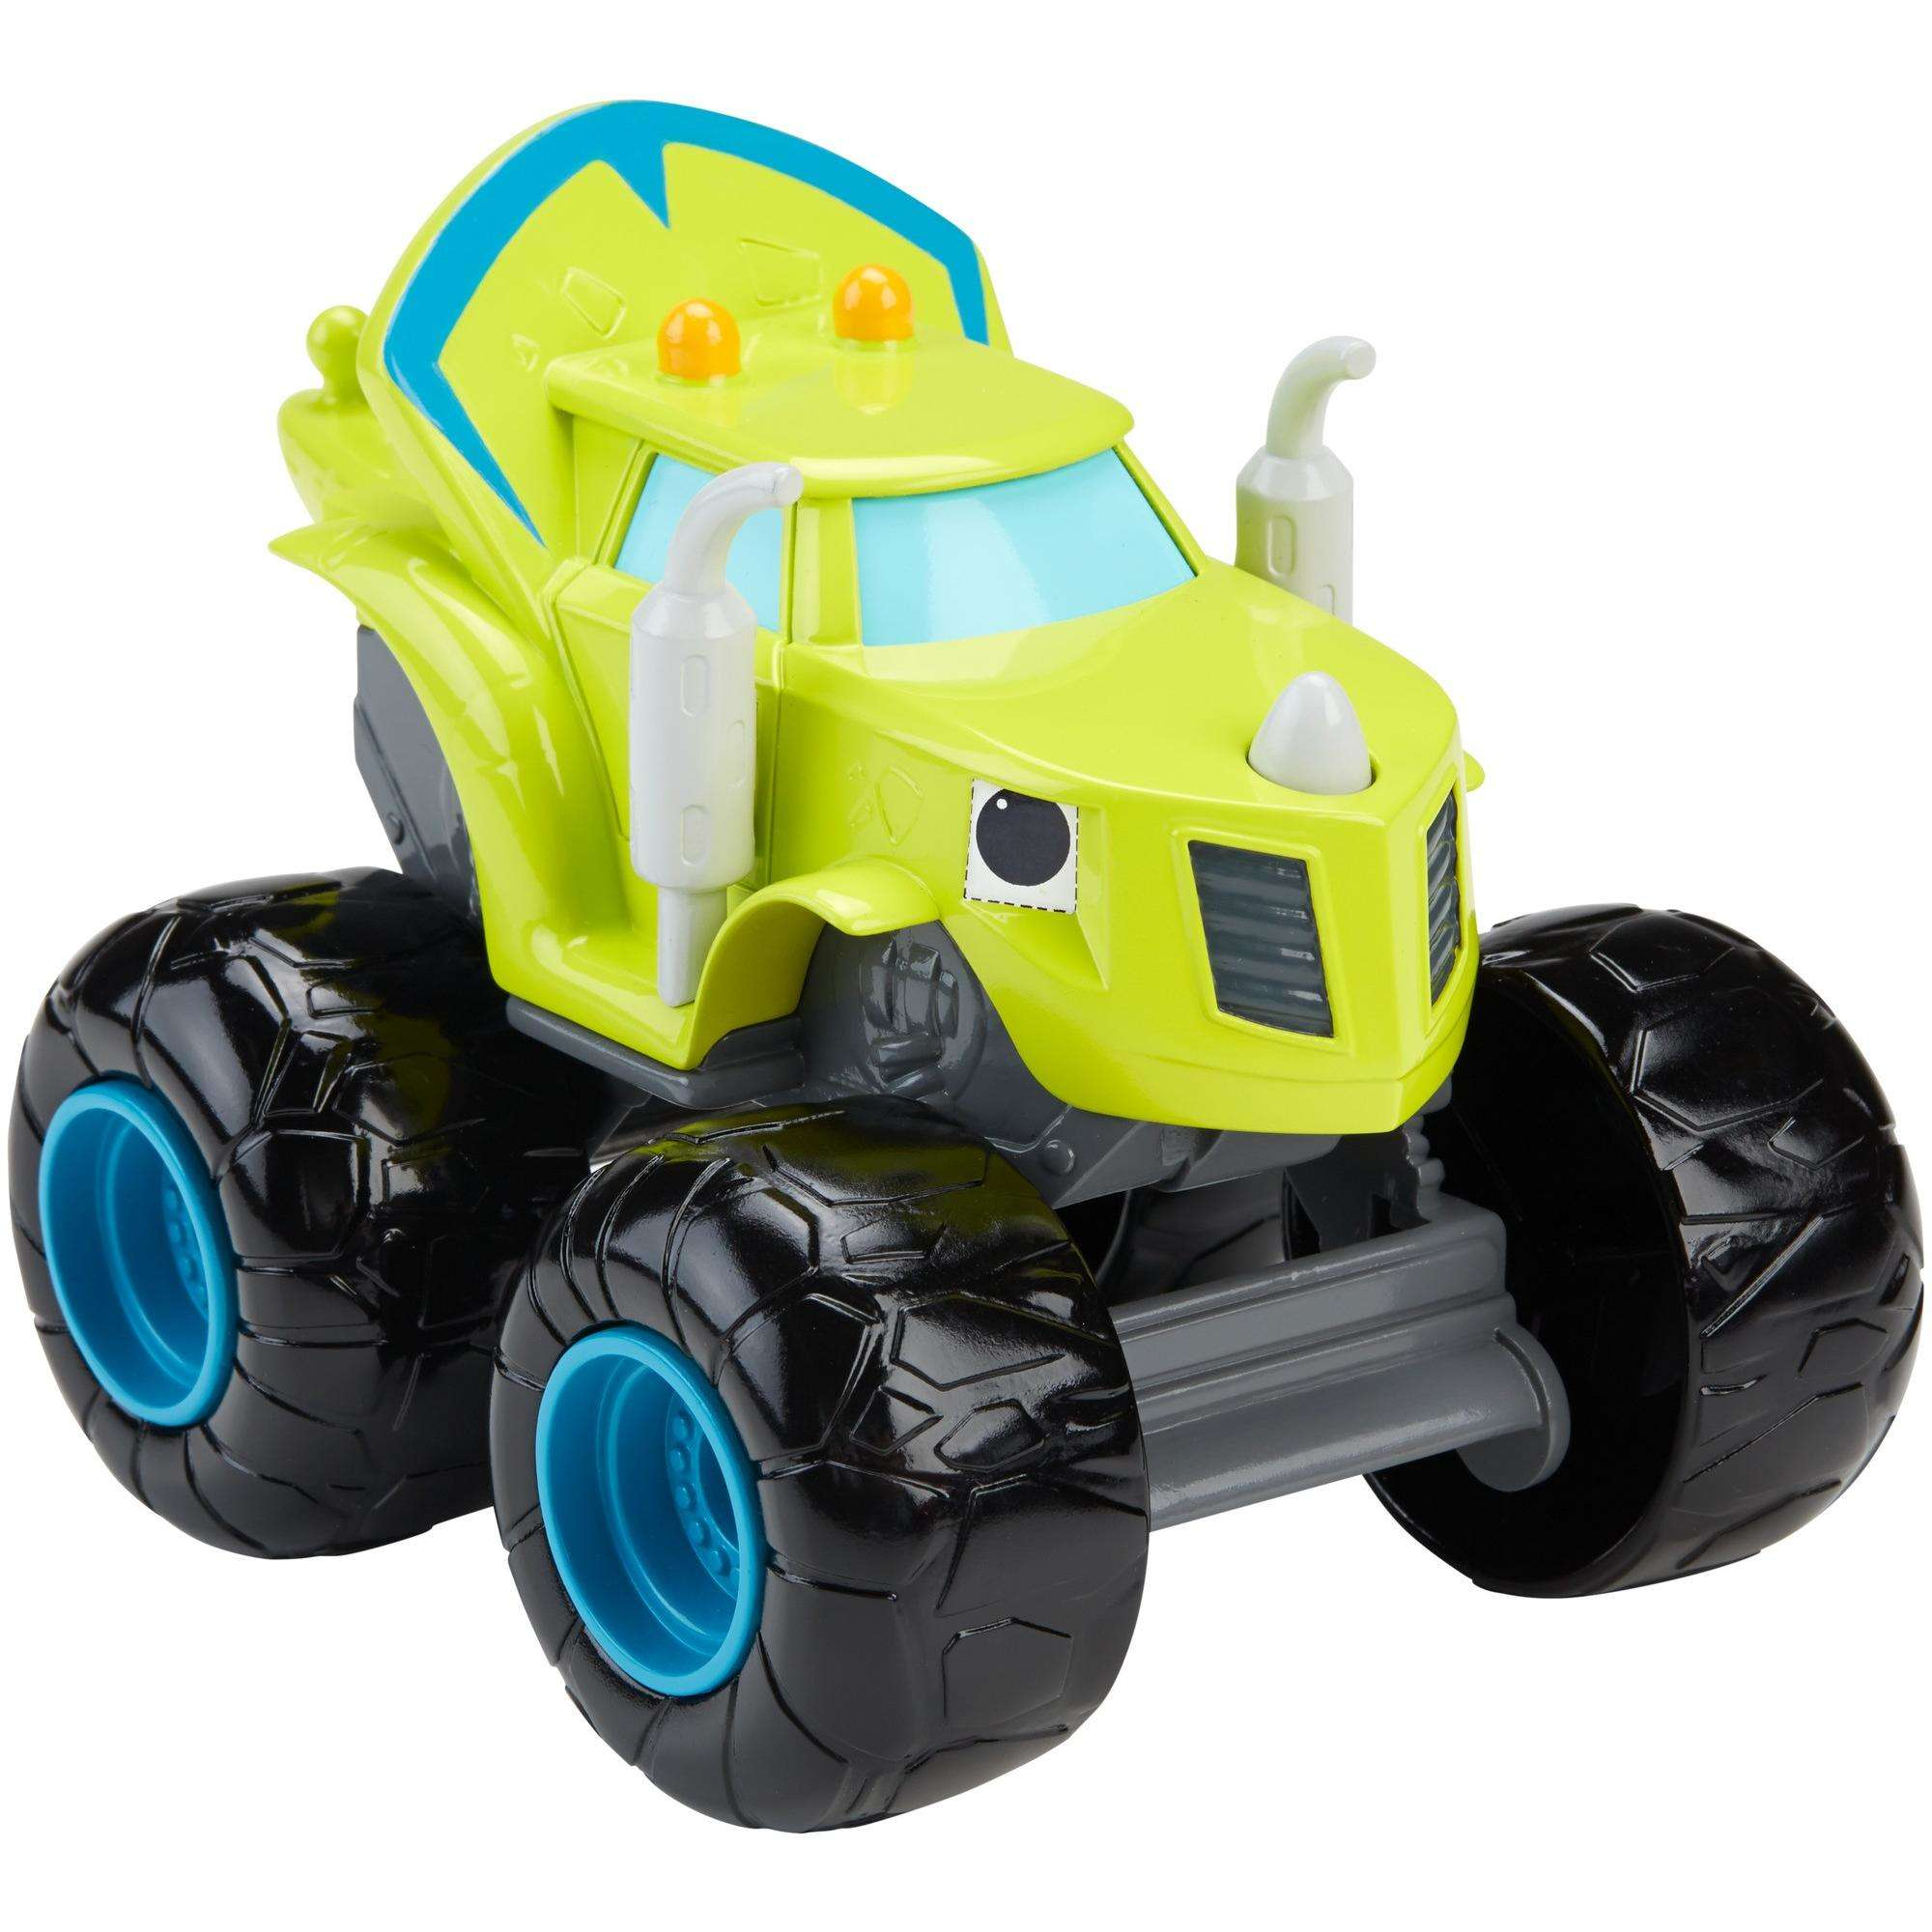 Fisher Price Nickelodeon Blaze and the Monster Machines Talking Zeg by Blaze